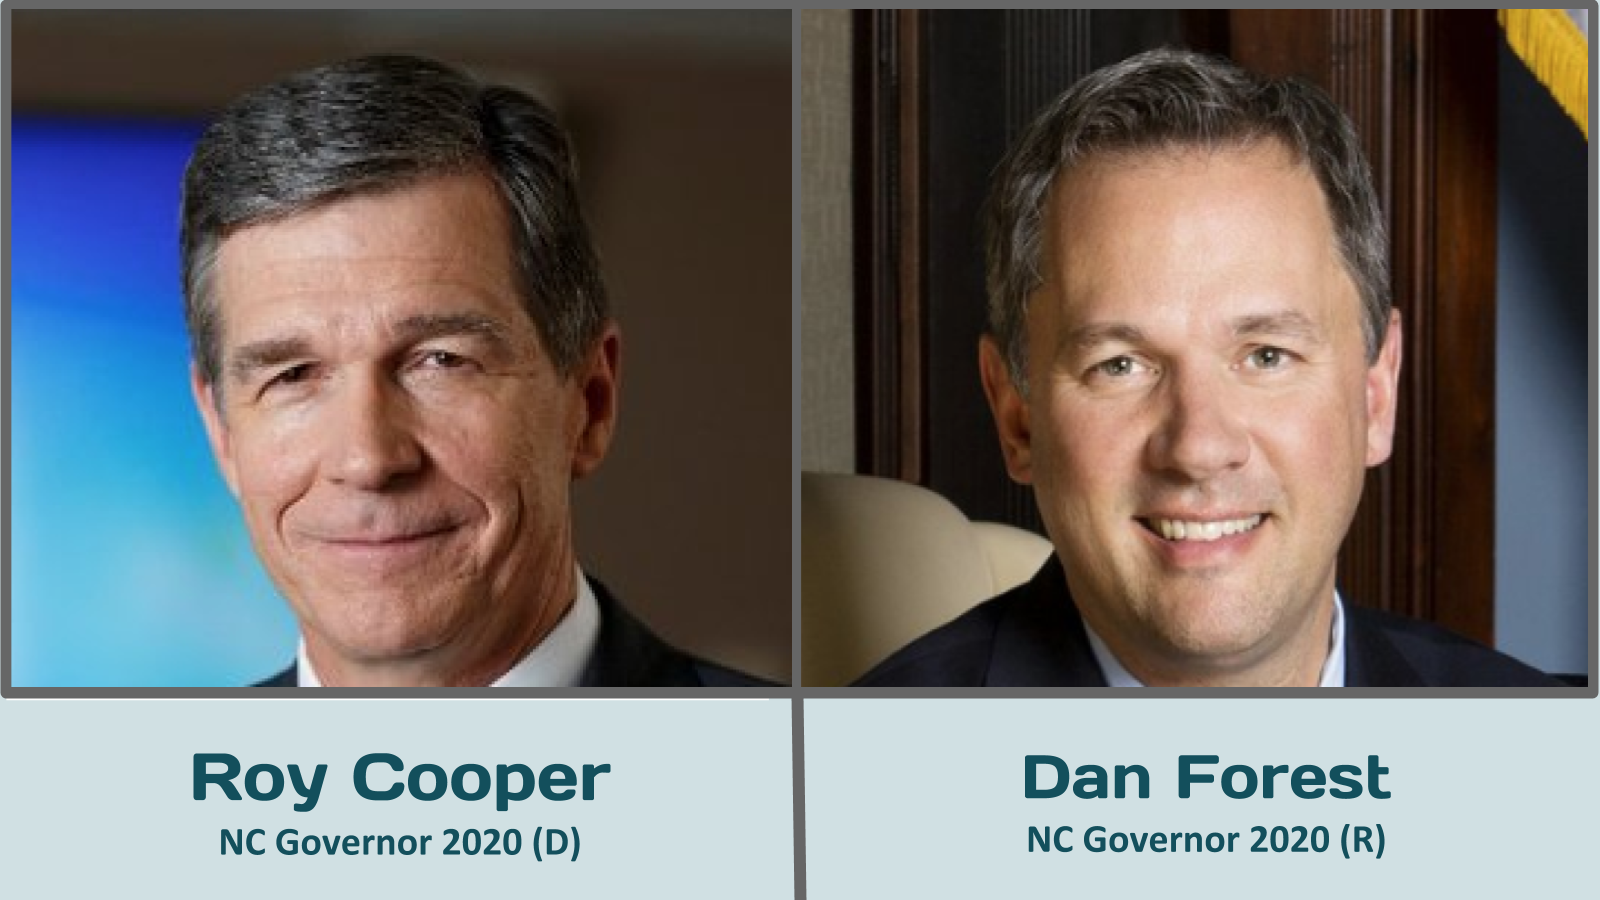 2020 NC Governor Race